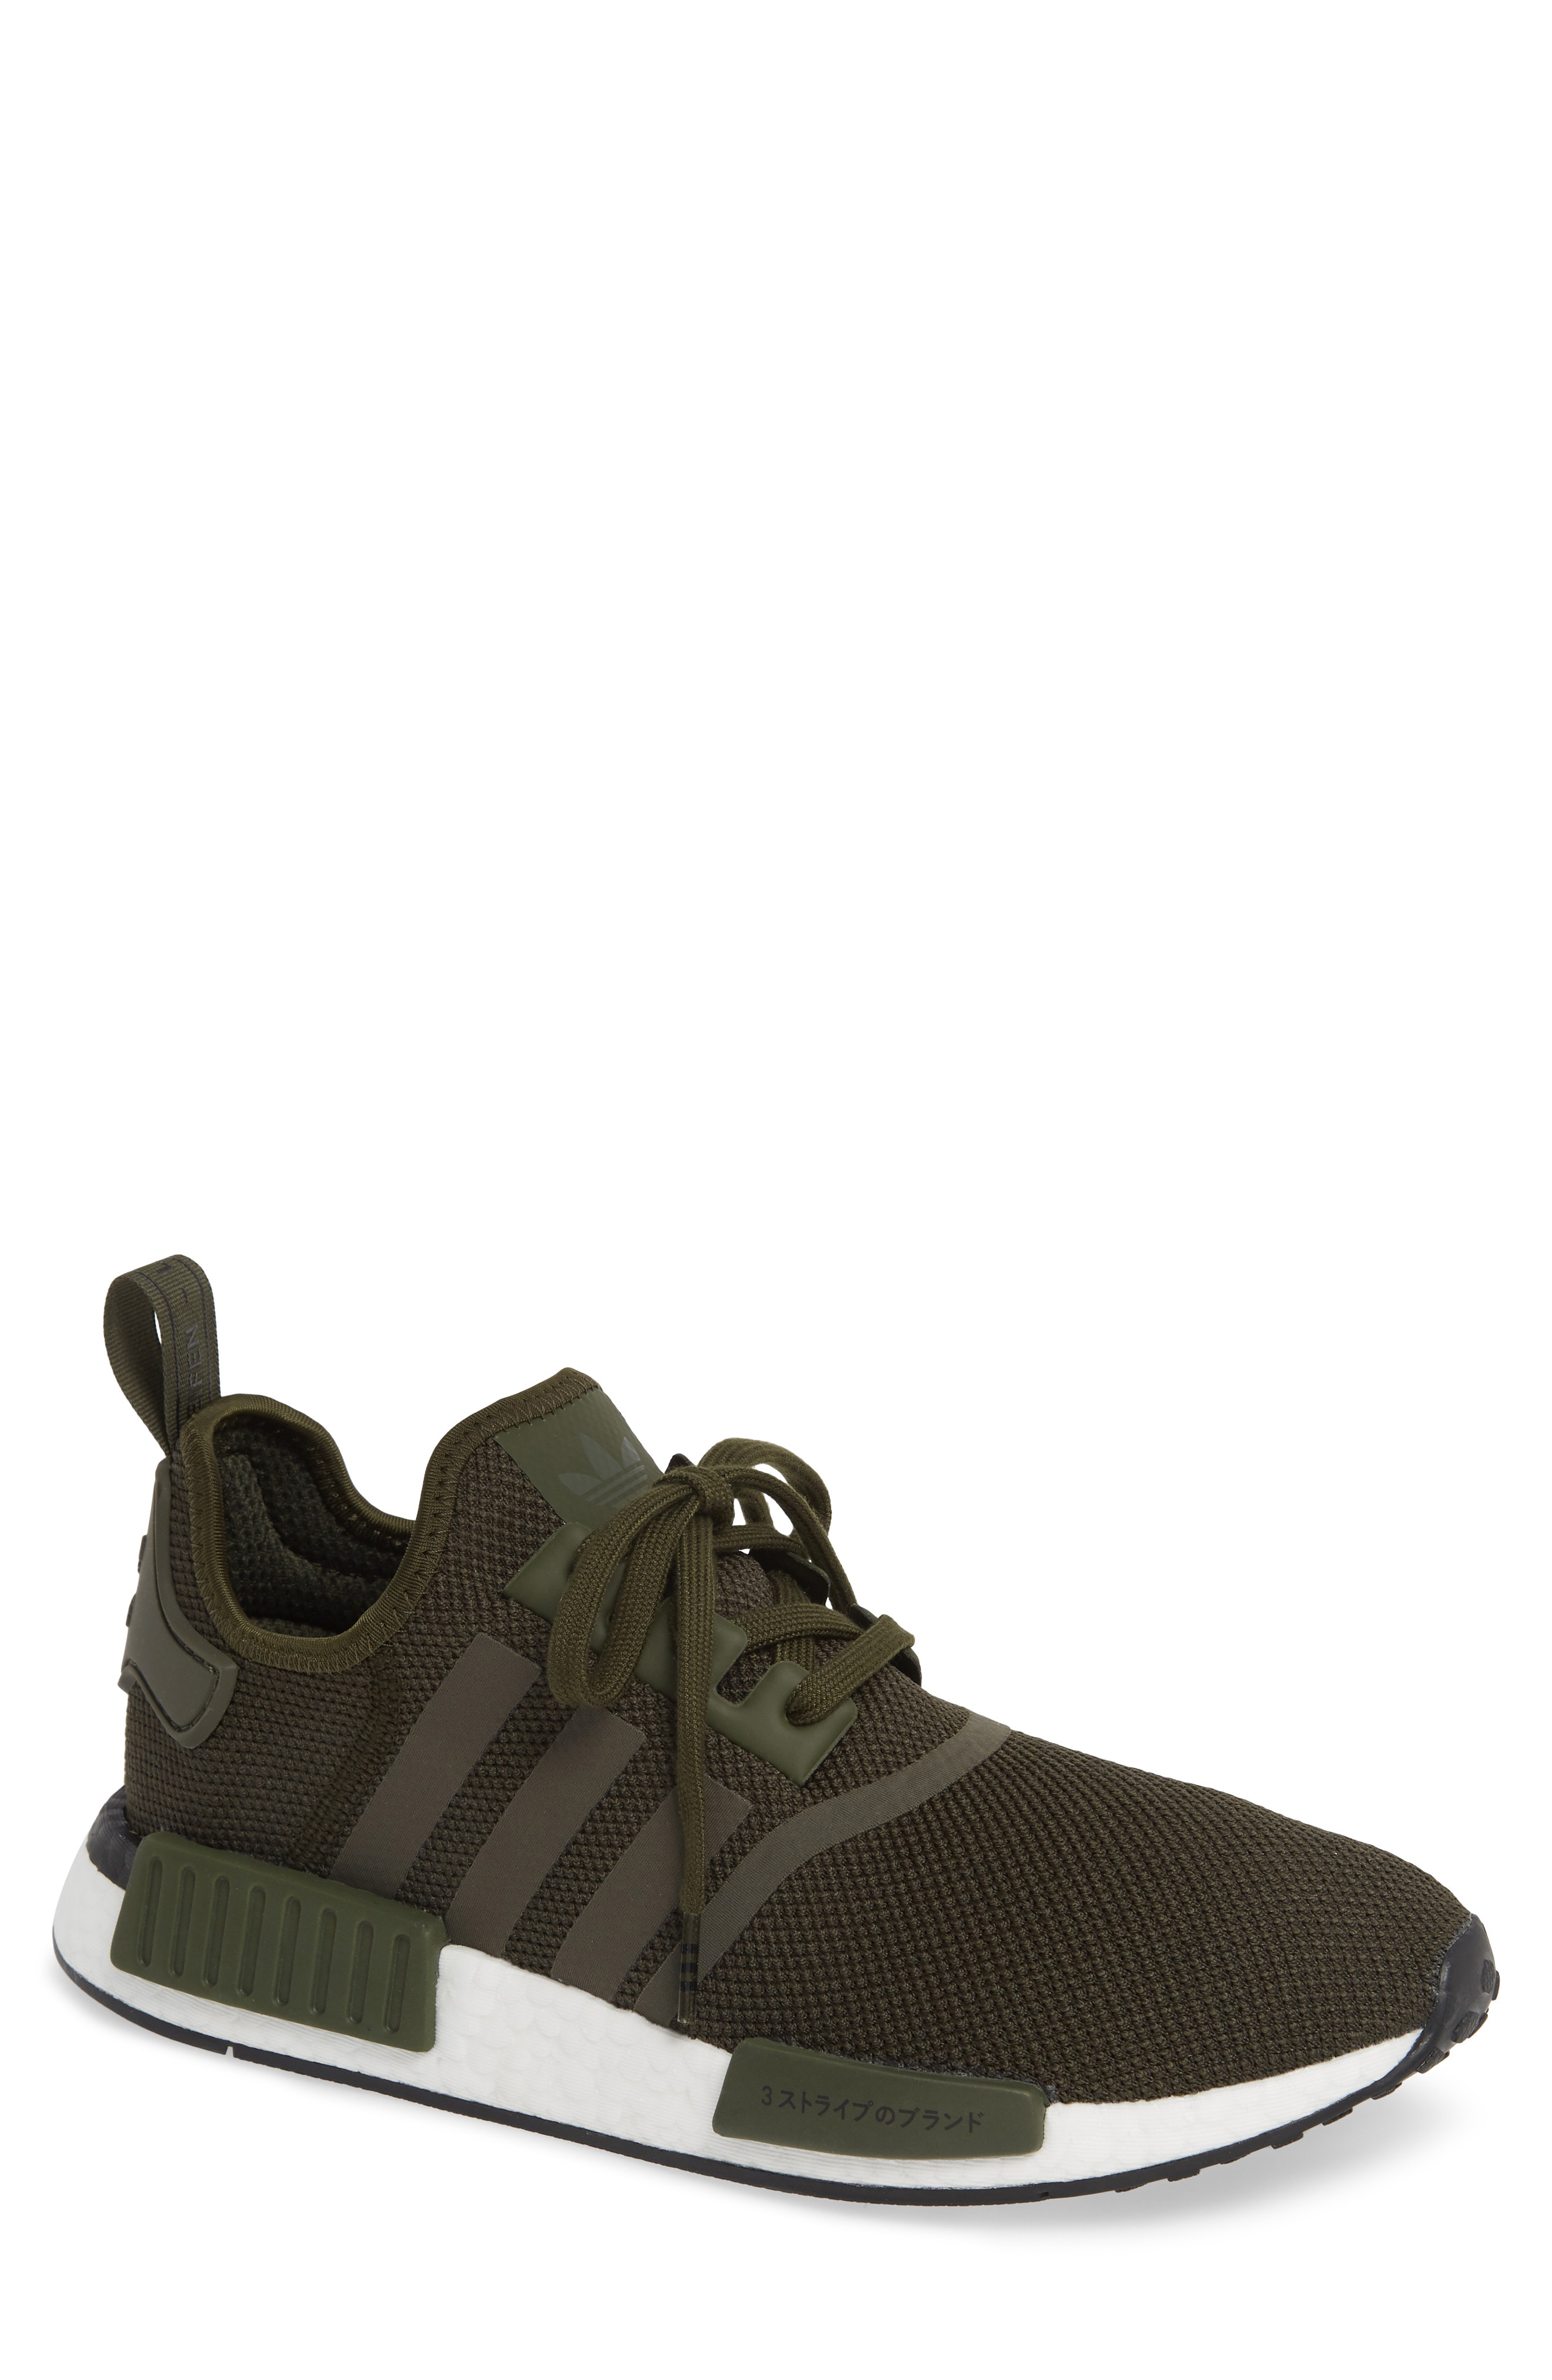 26e1eaa3c33fa Adidas Originals Adidas Men s Nmd R1 Casual Sneakers From Finish Line In Night  Cargo Night